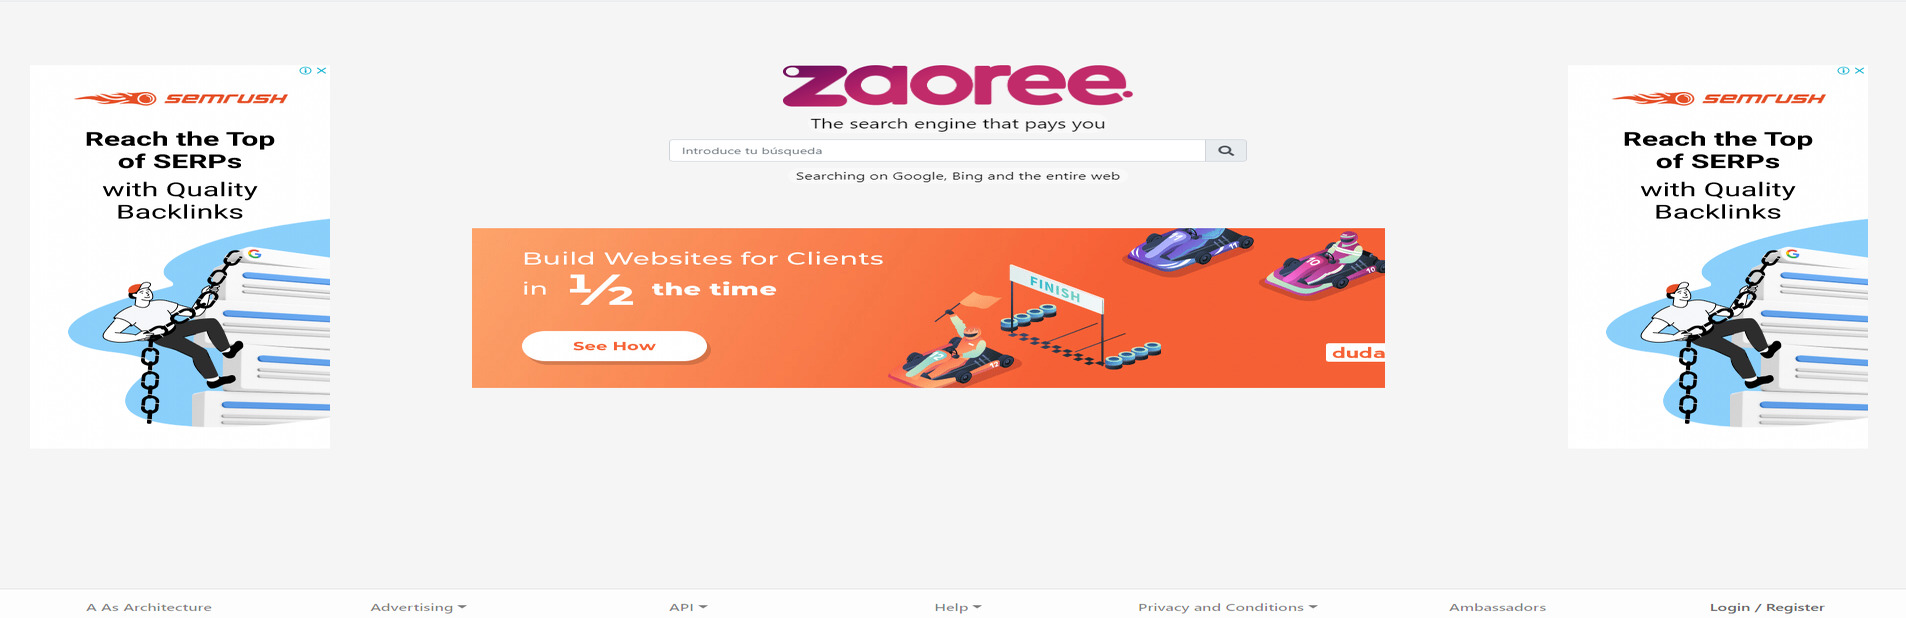 Is Zaoree Legit? Review: A Search Engine that Pays you